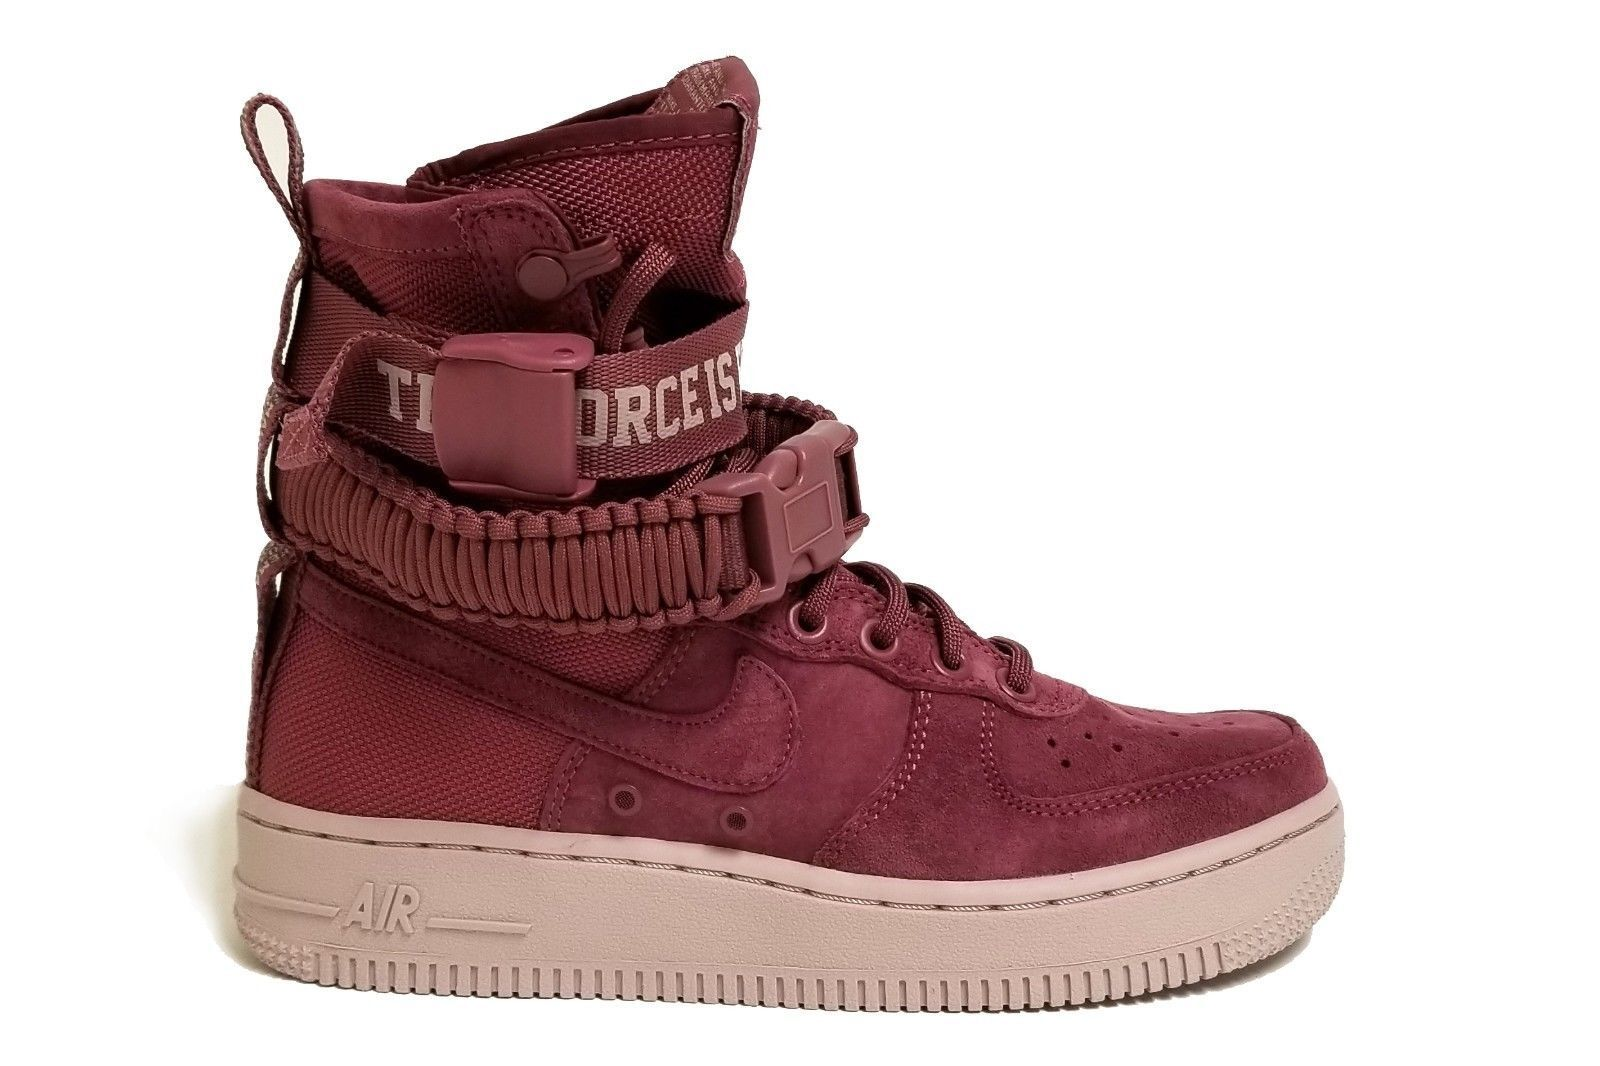 {AJ1700-600} WOMEN'S NIKE SF AIR FORCE 1 MID SHOE VINTAGE WINE NEW